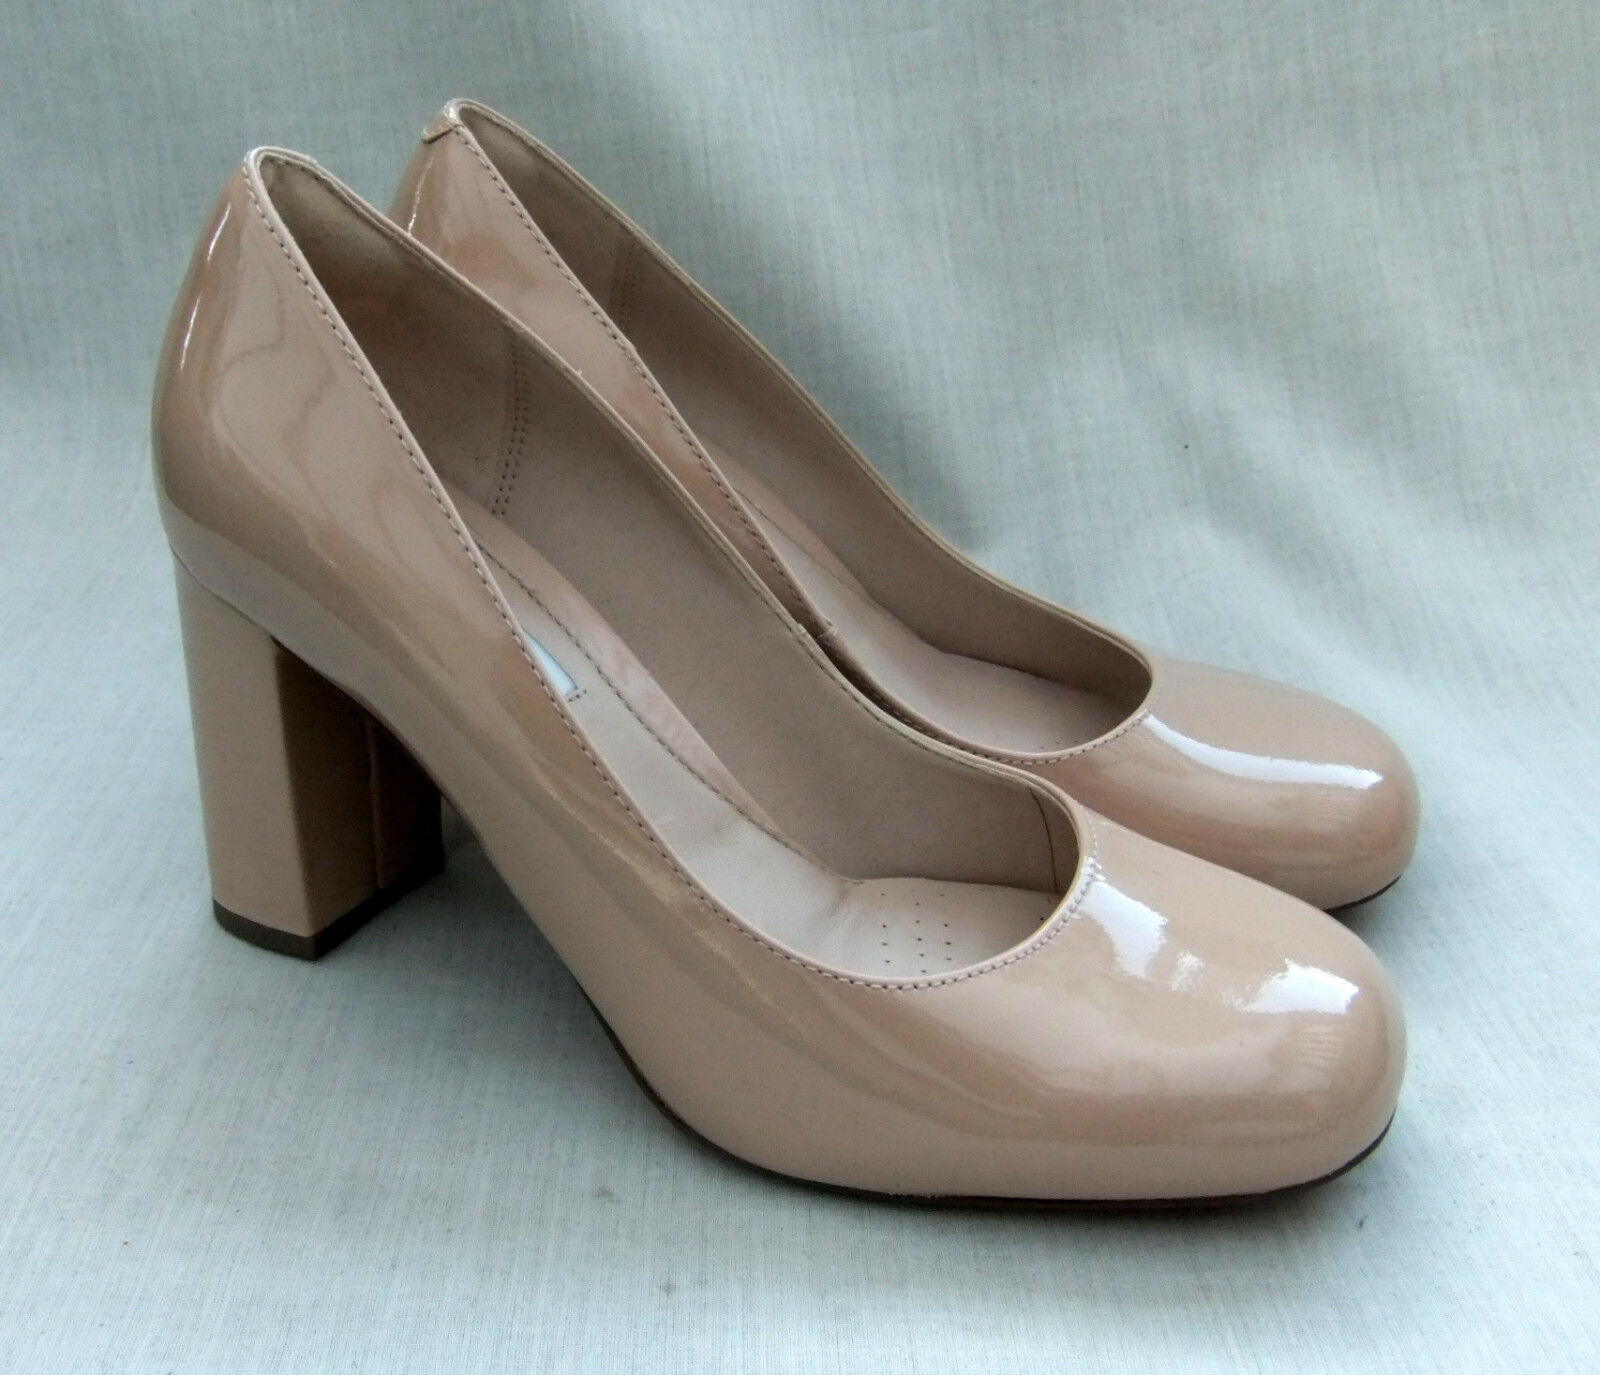 NEW CLARKS GABRIEL MIST femmes NUDE PATENT LEATHER chaussures